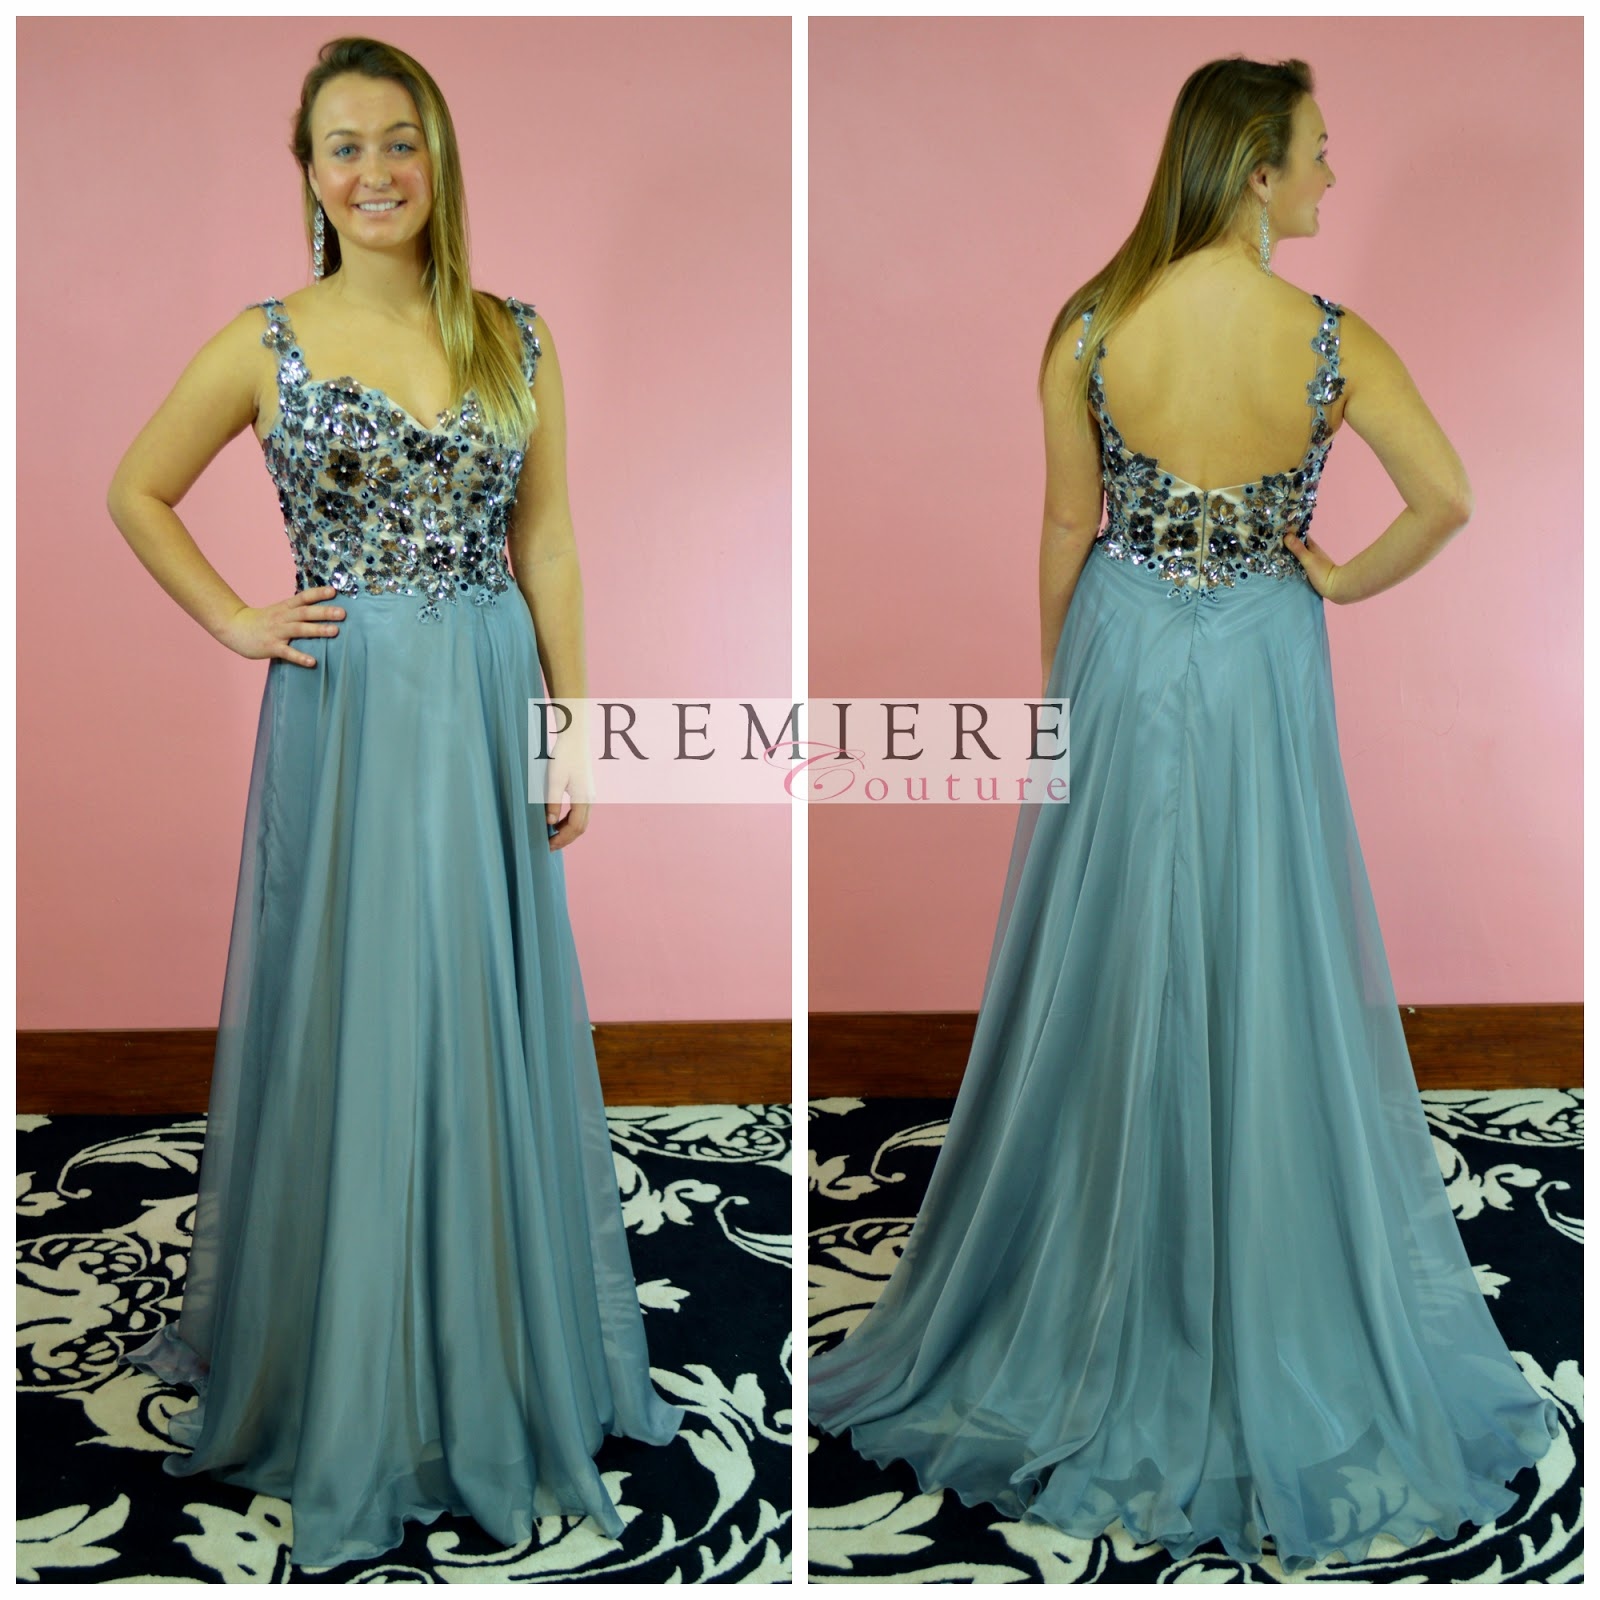 Lujoso Tacoma Discount World Prom Dresses Molde - Ideas de Vestido ...